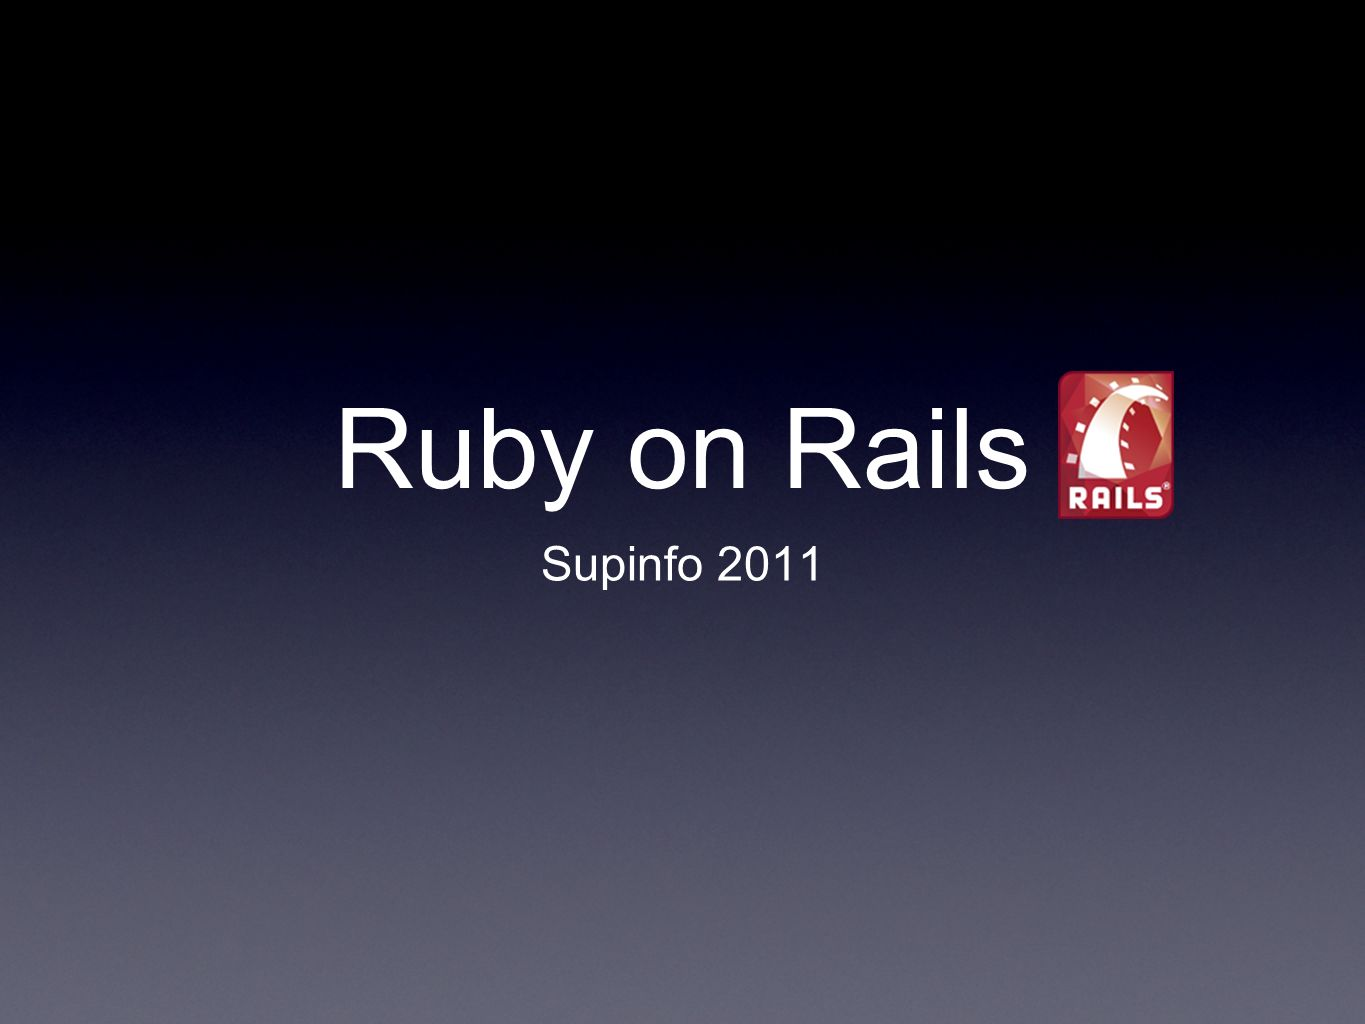 Ruby on Rails Supinfo 2011